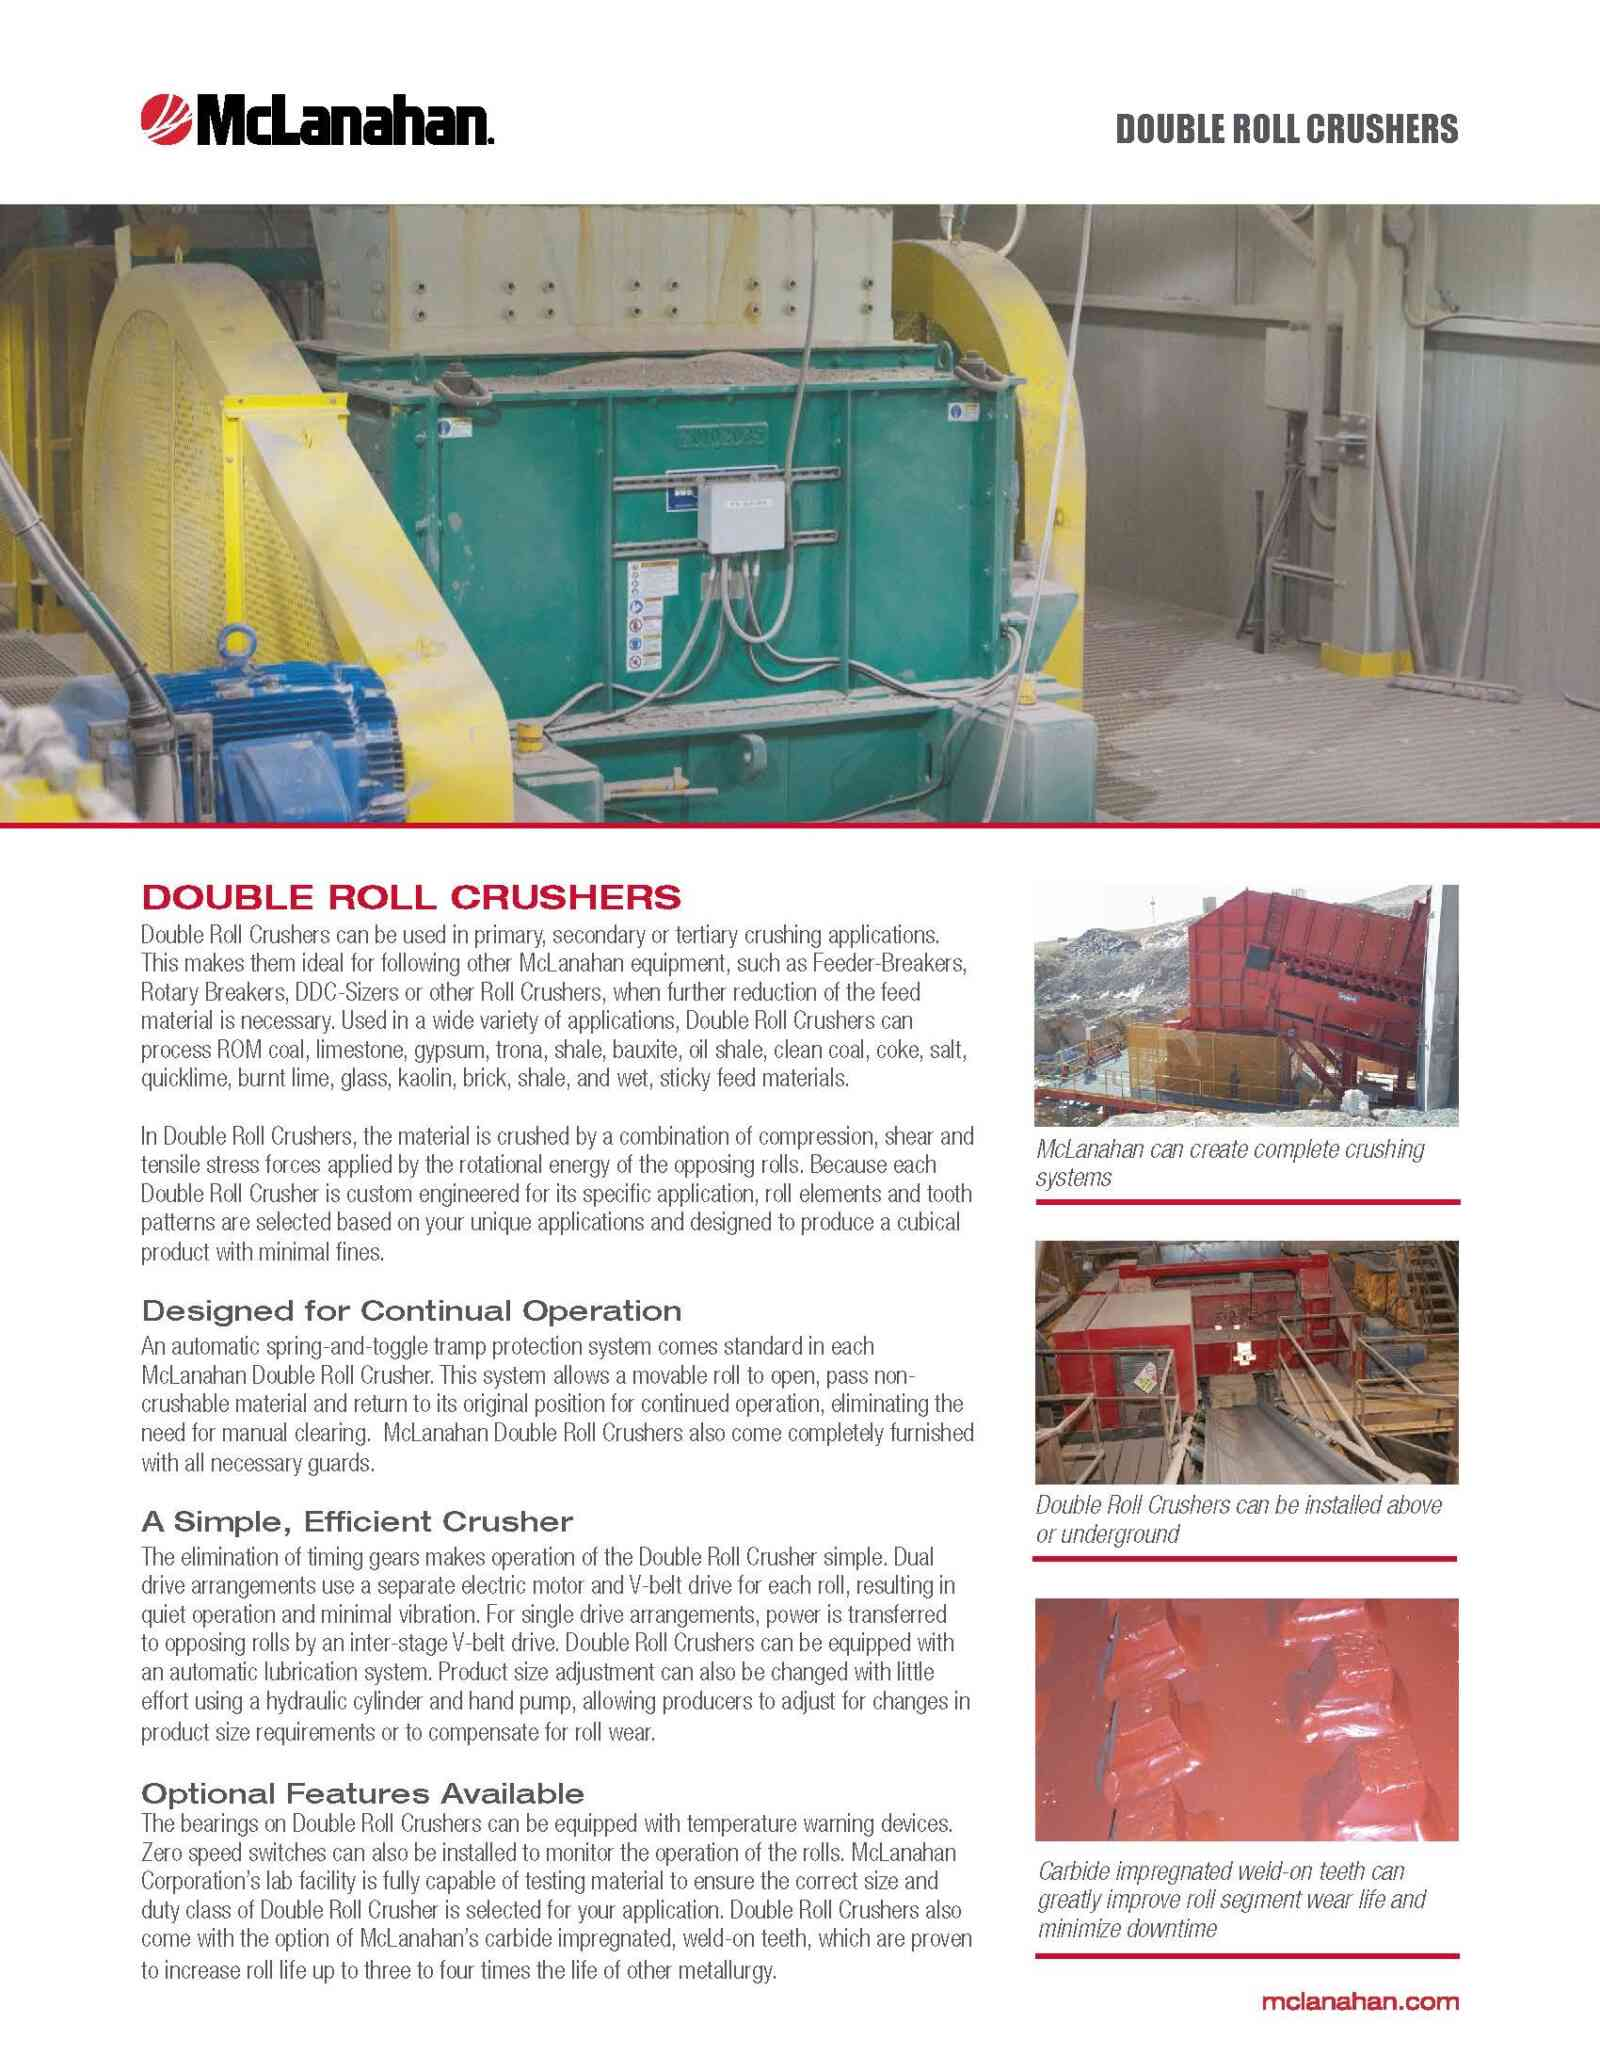 Double Roll Crusher Brochure Image Page 1